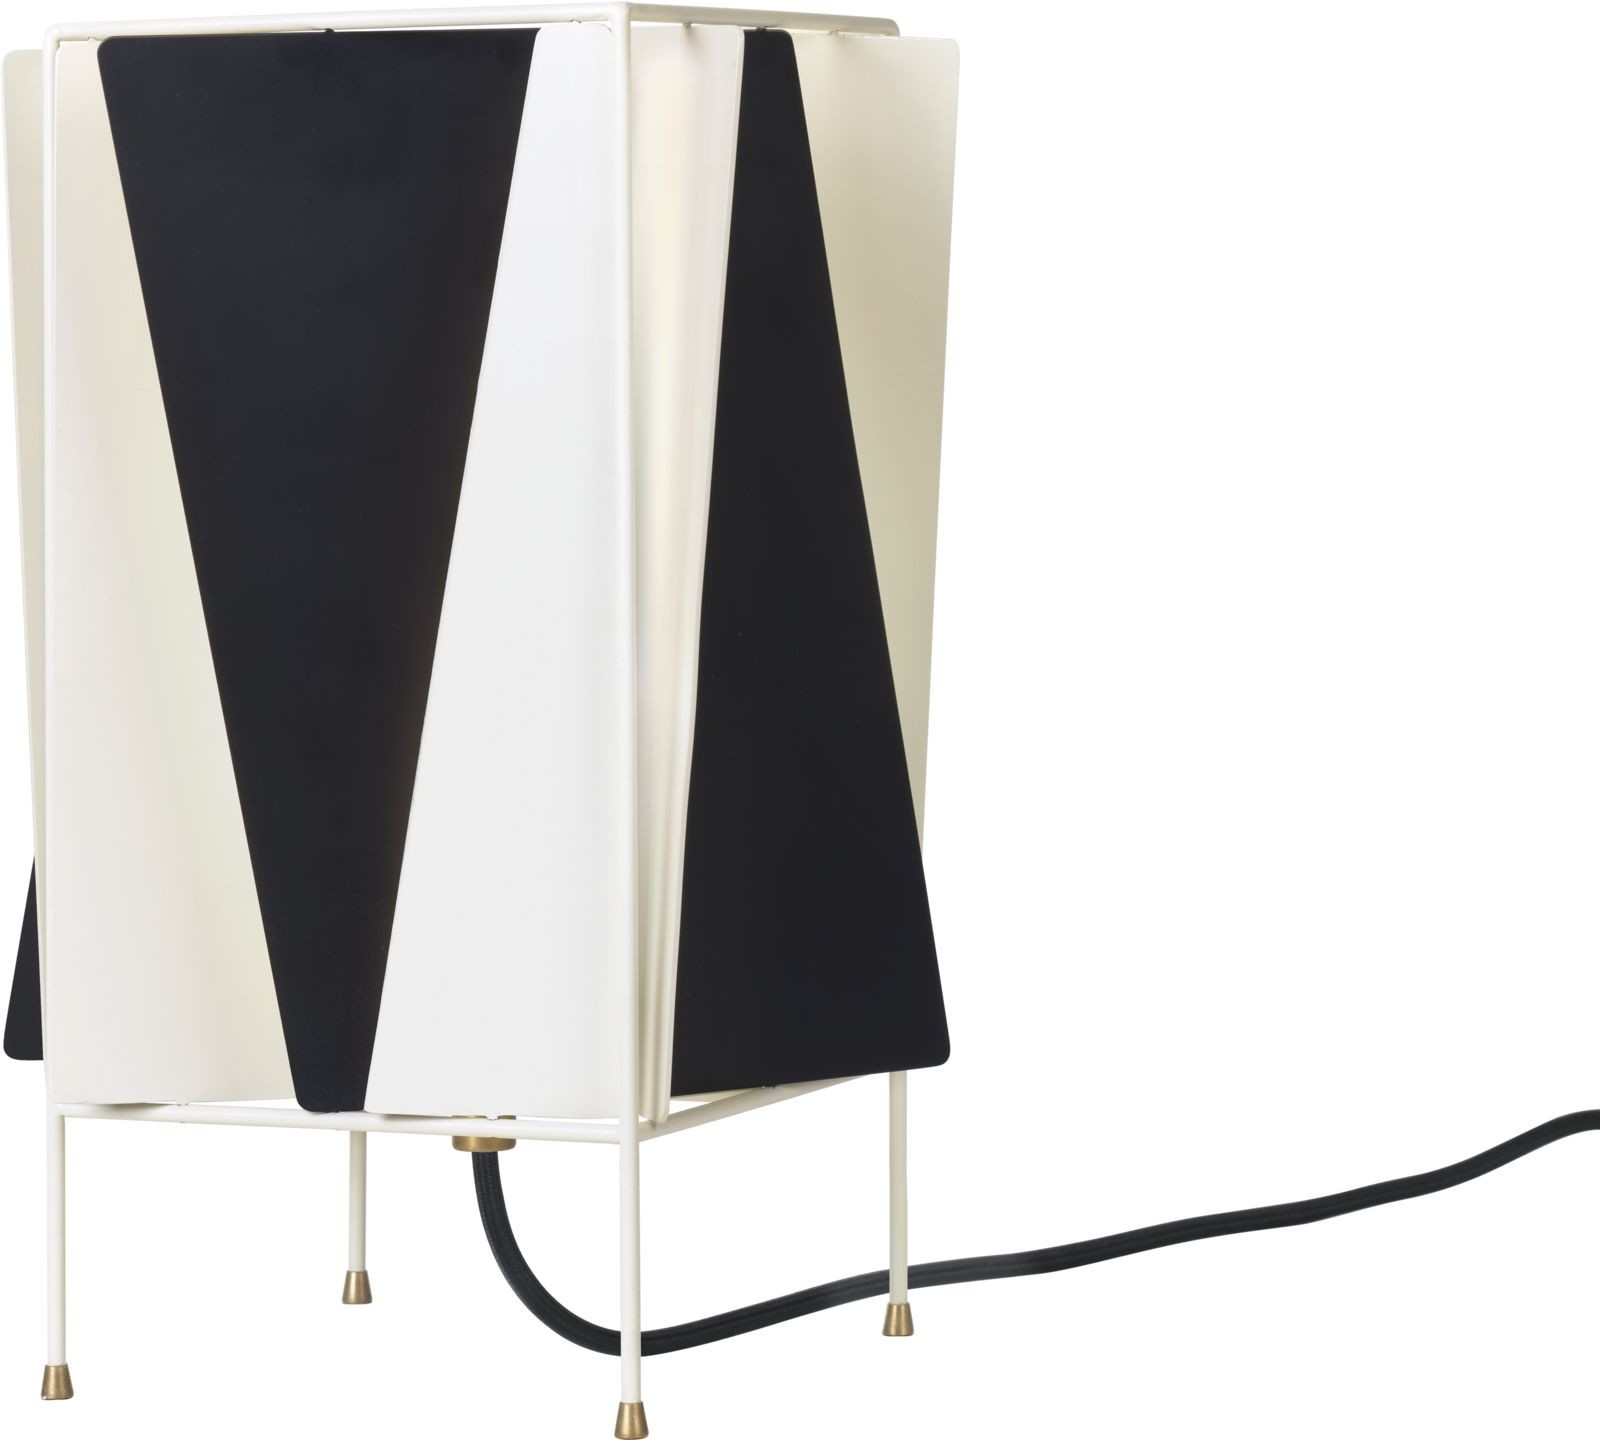 B-4 Table Lamp Black & White